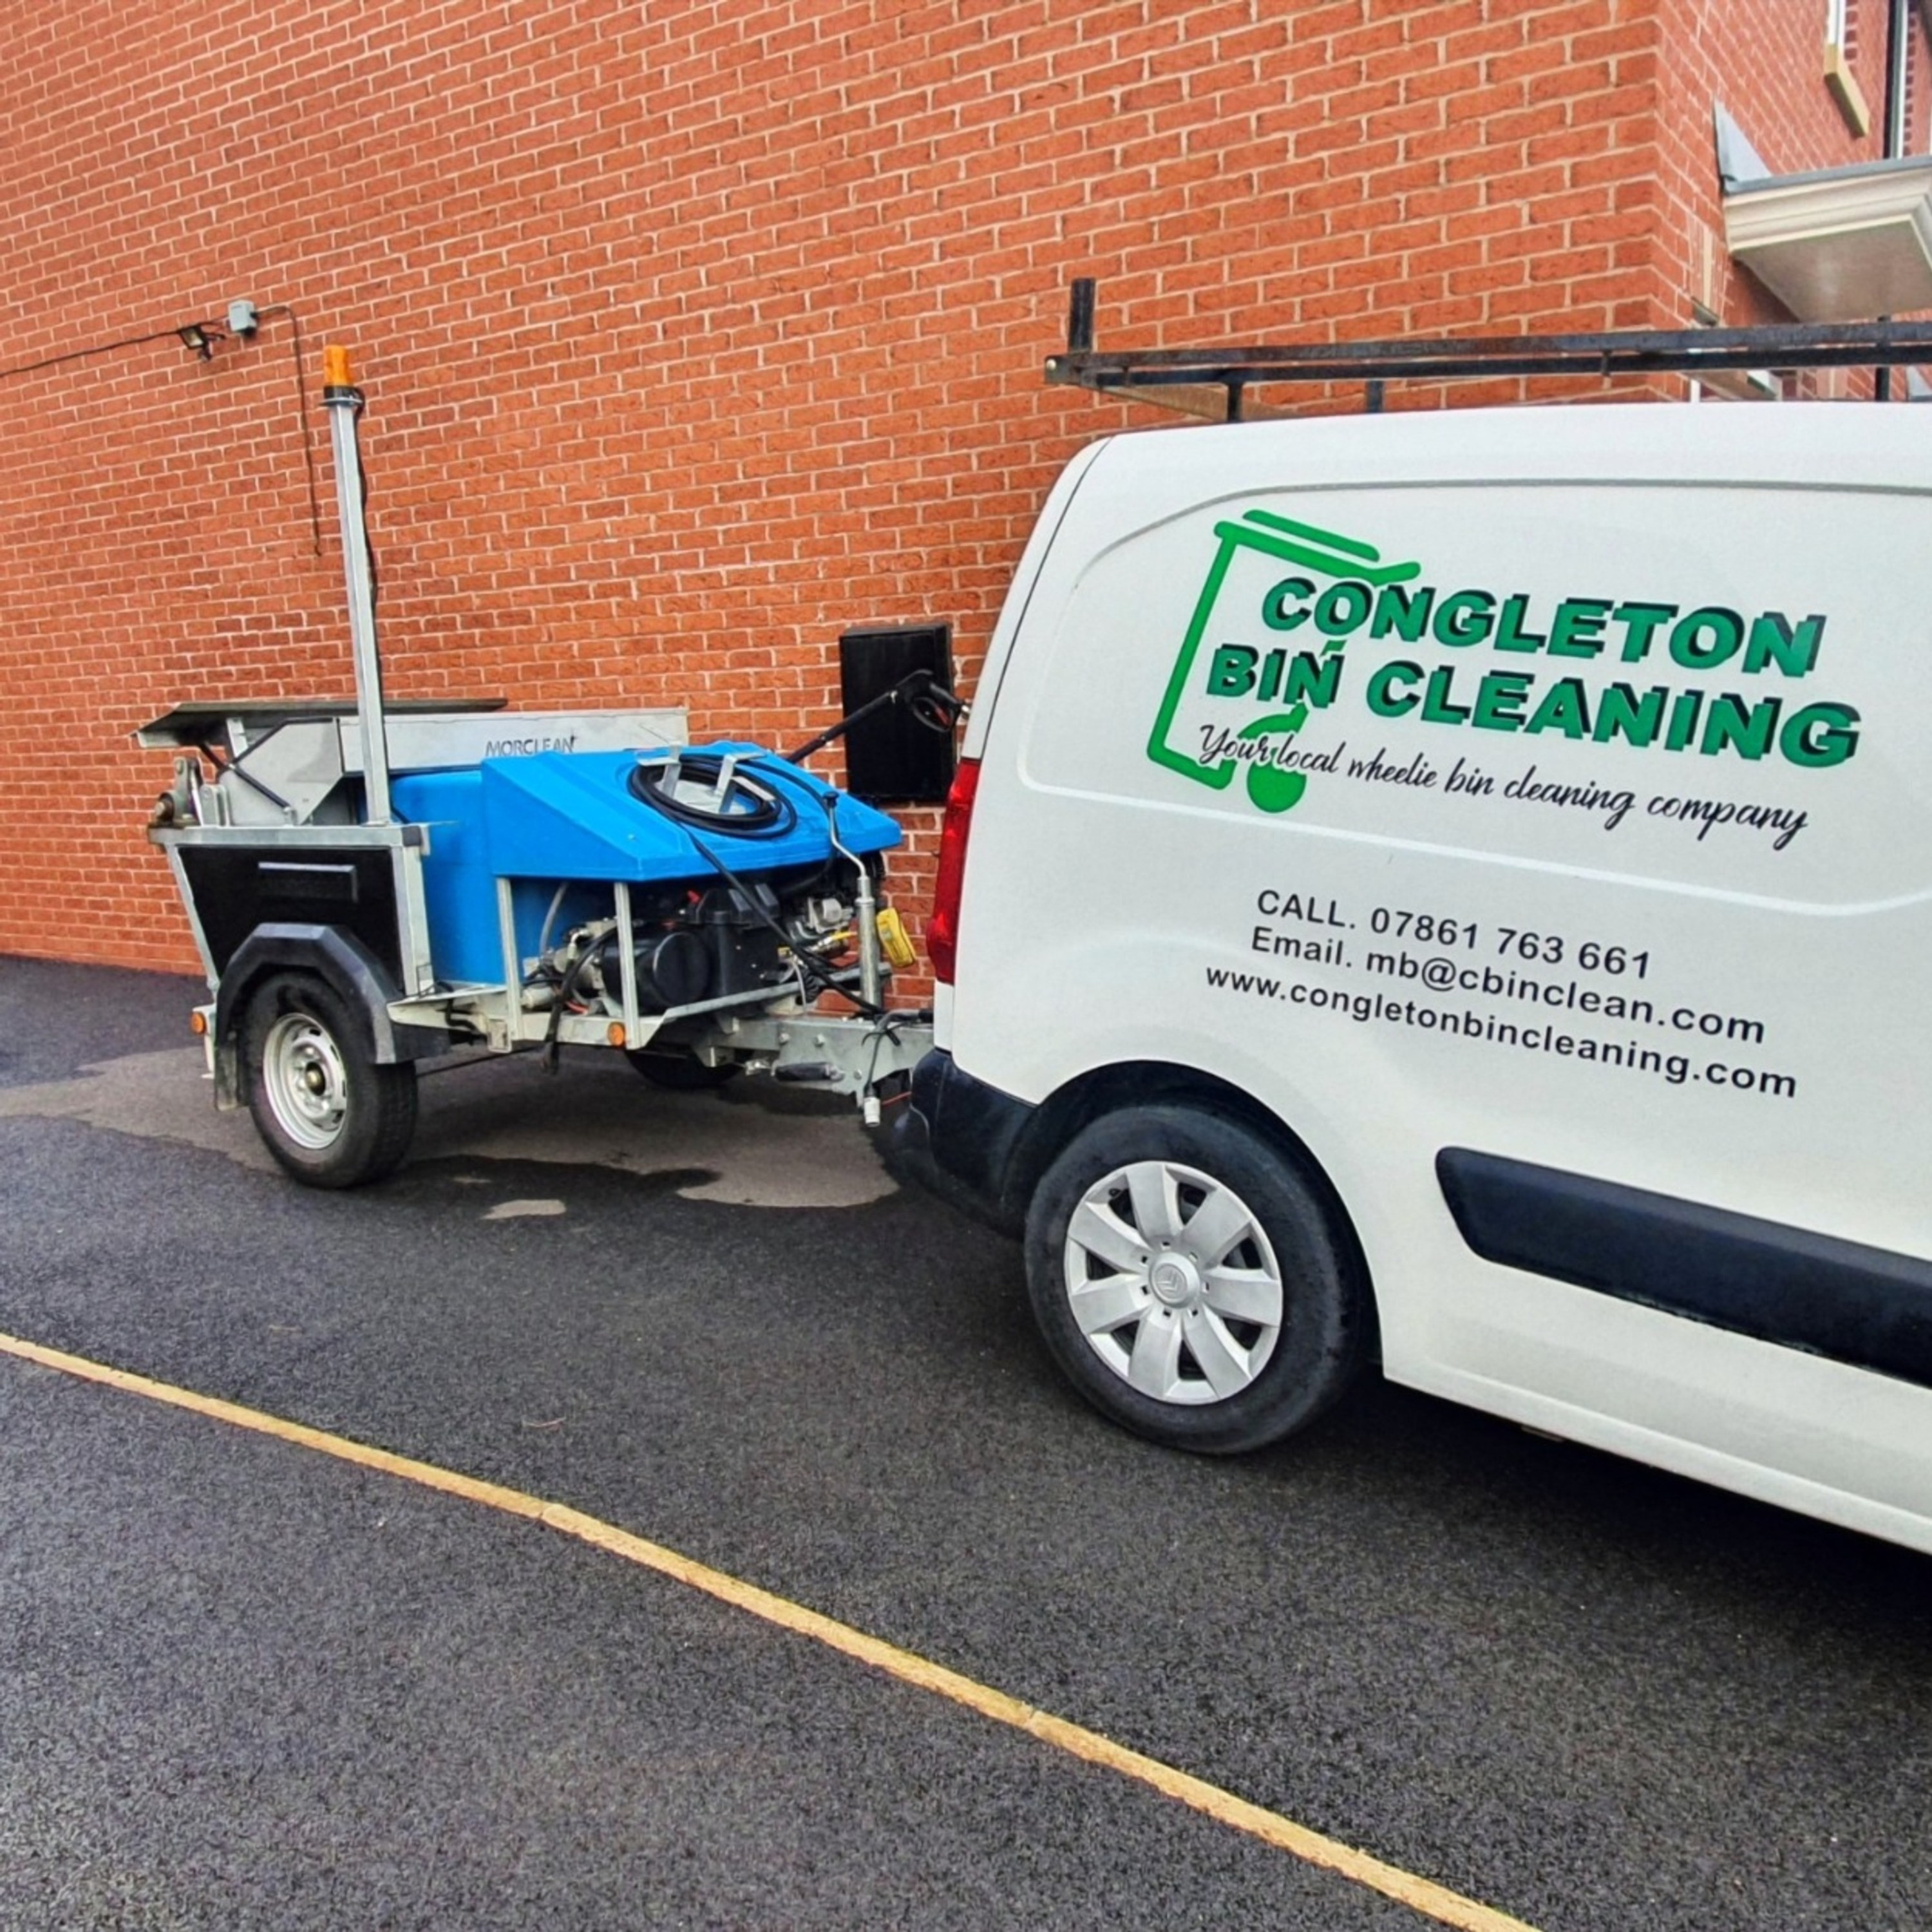 Mobile jet washer cleaning please call